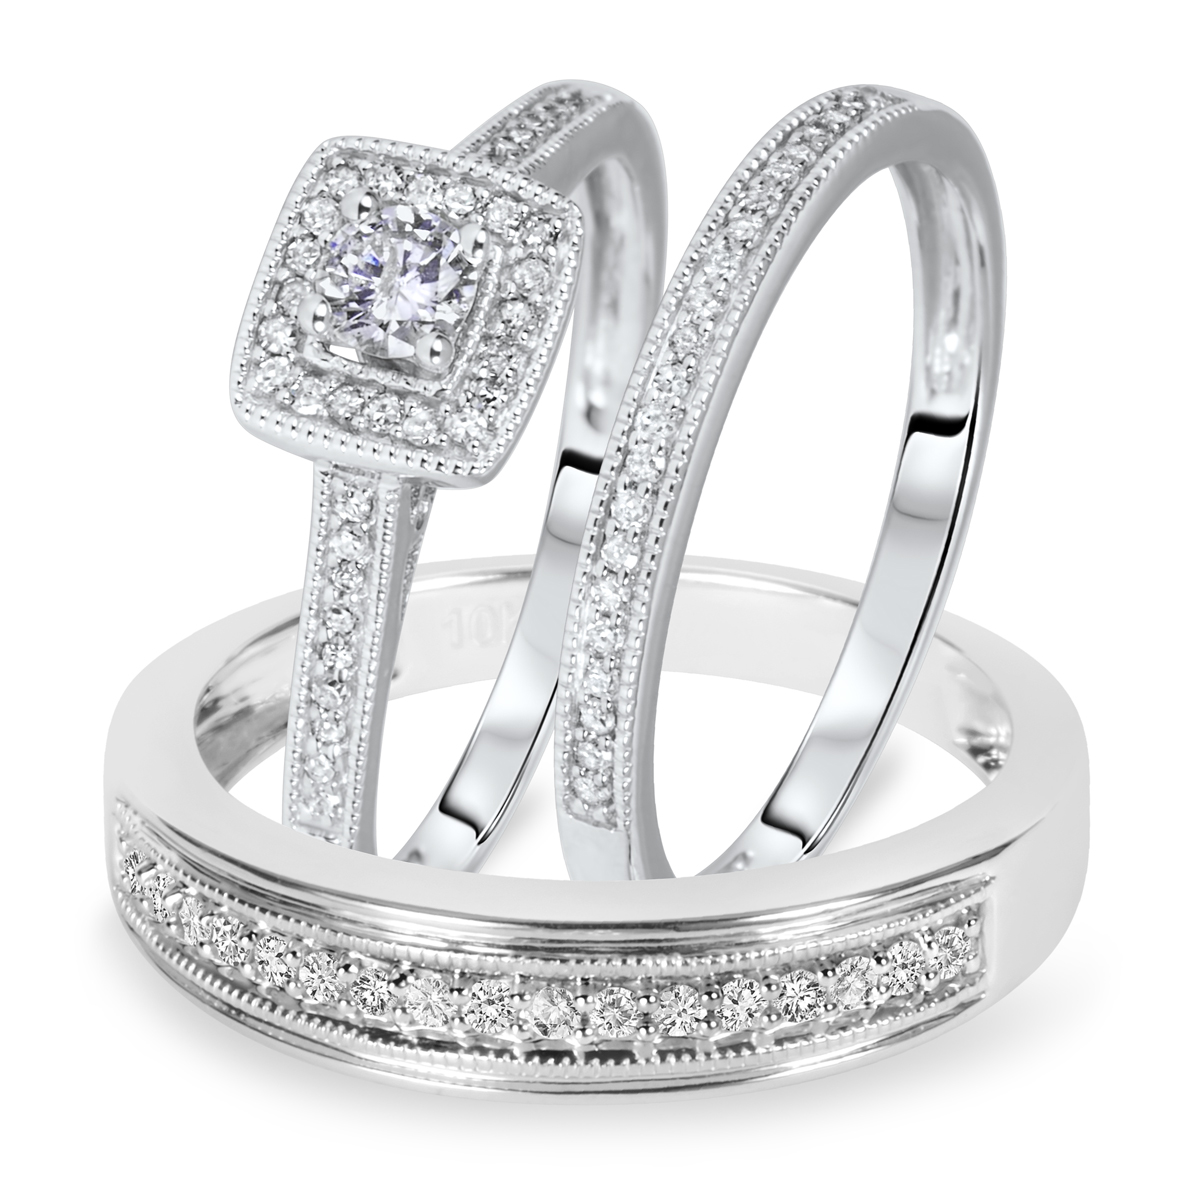 gold wedding ring sets Affordable Trio Ring Sets Diamond Wedding Ring Set 1 25ct 10K Gold